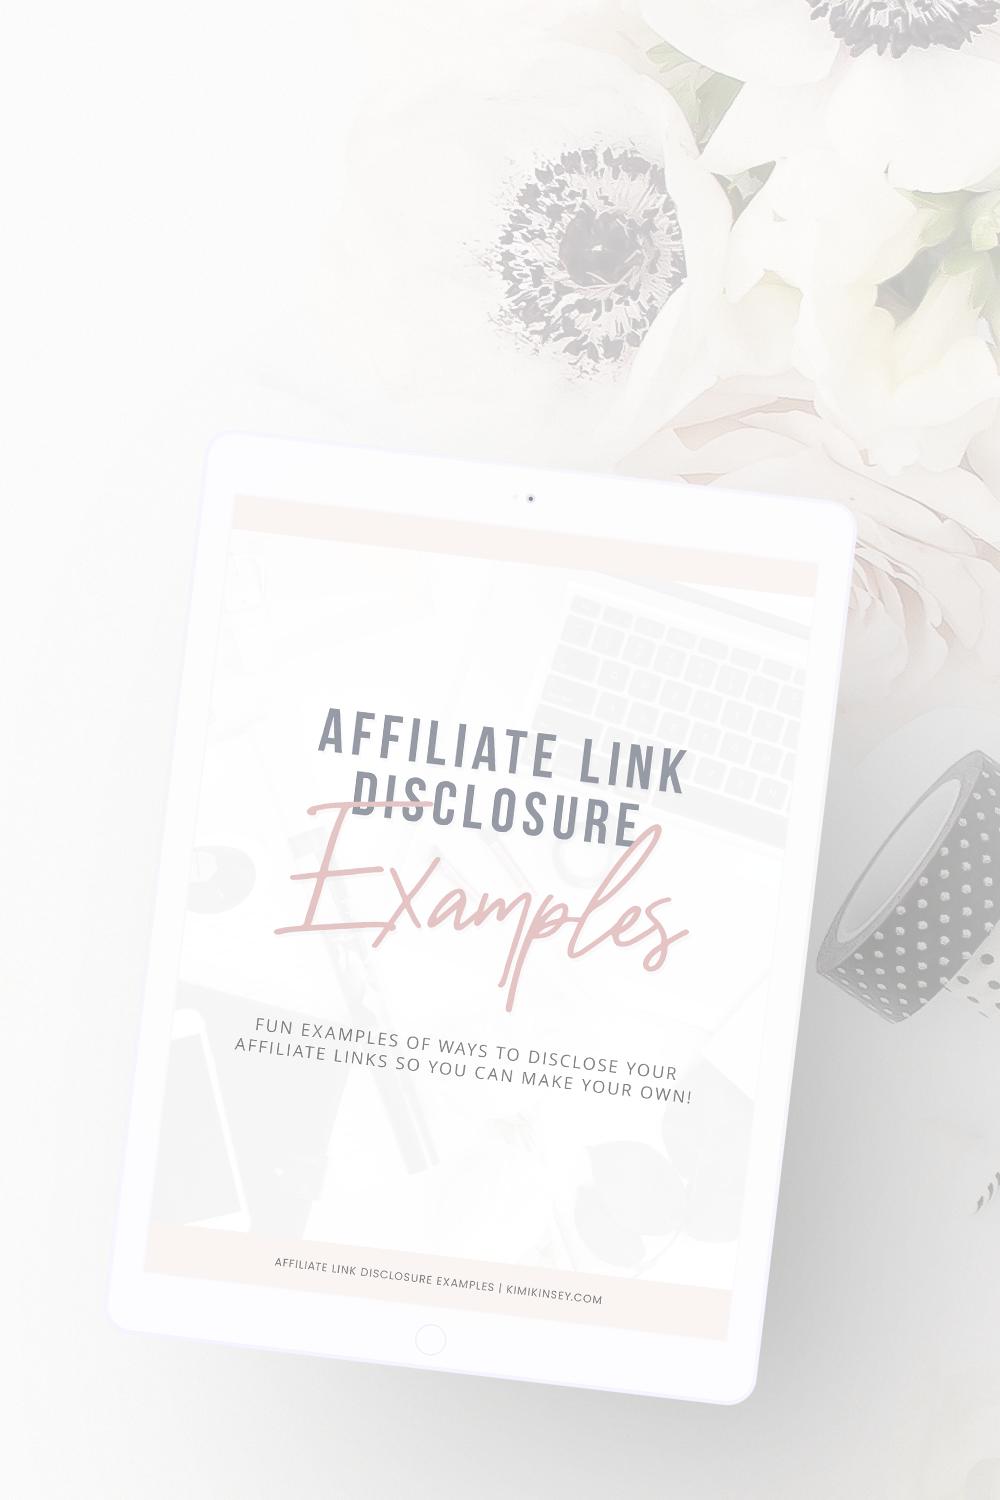 How To Properly Disclose Your Affiliate Links + Free Affiliate Disclaimer Cheat Sheet